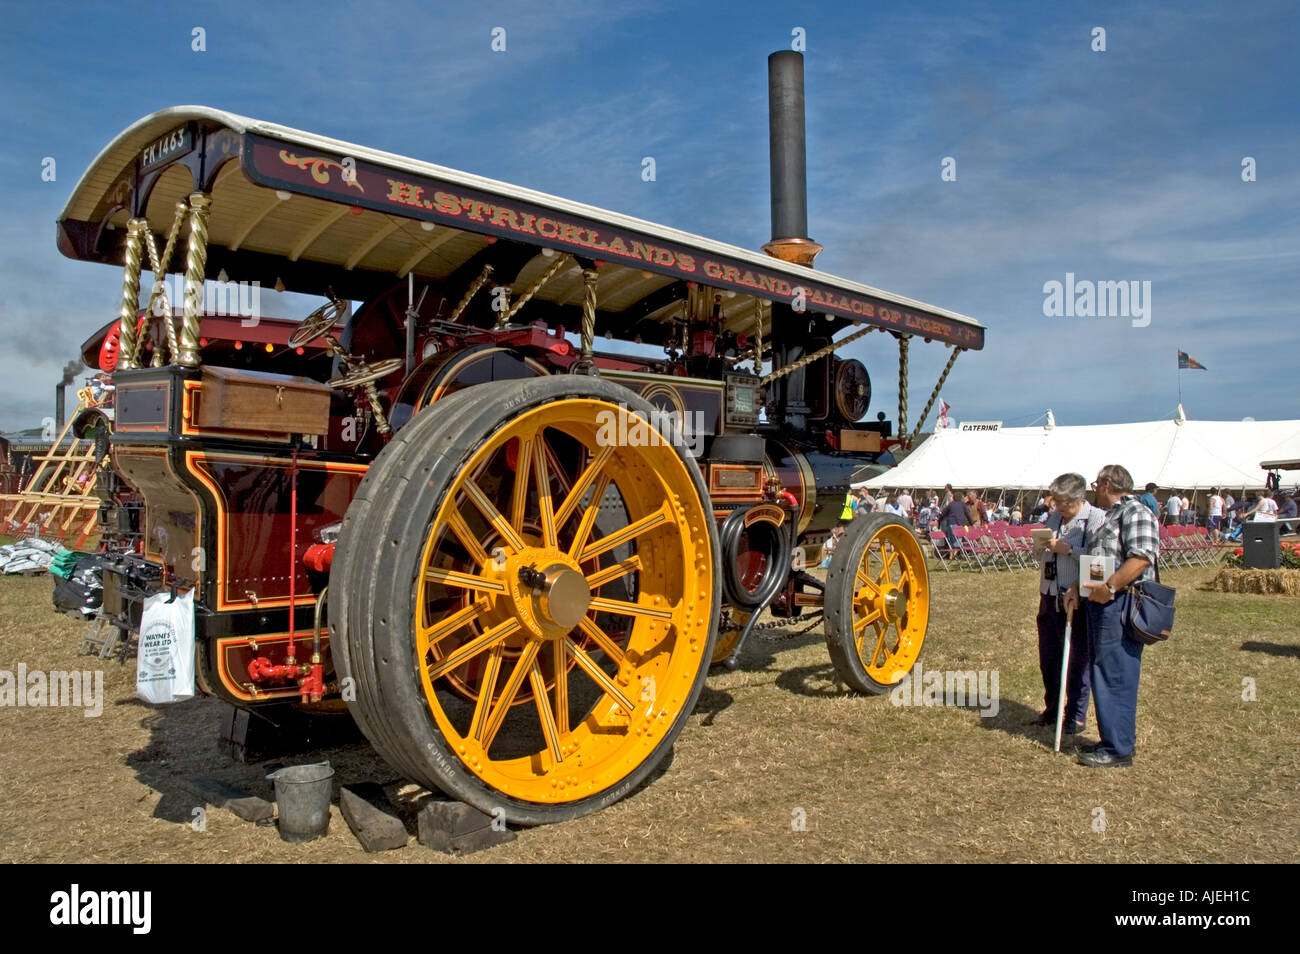 a vintage traction engine - Stock Image